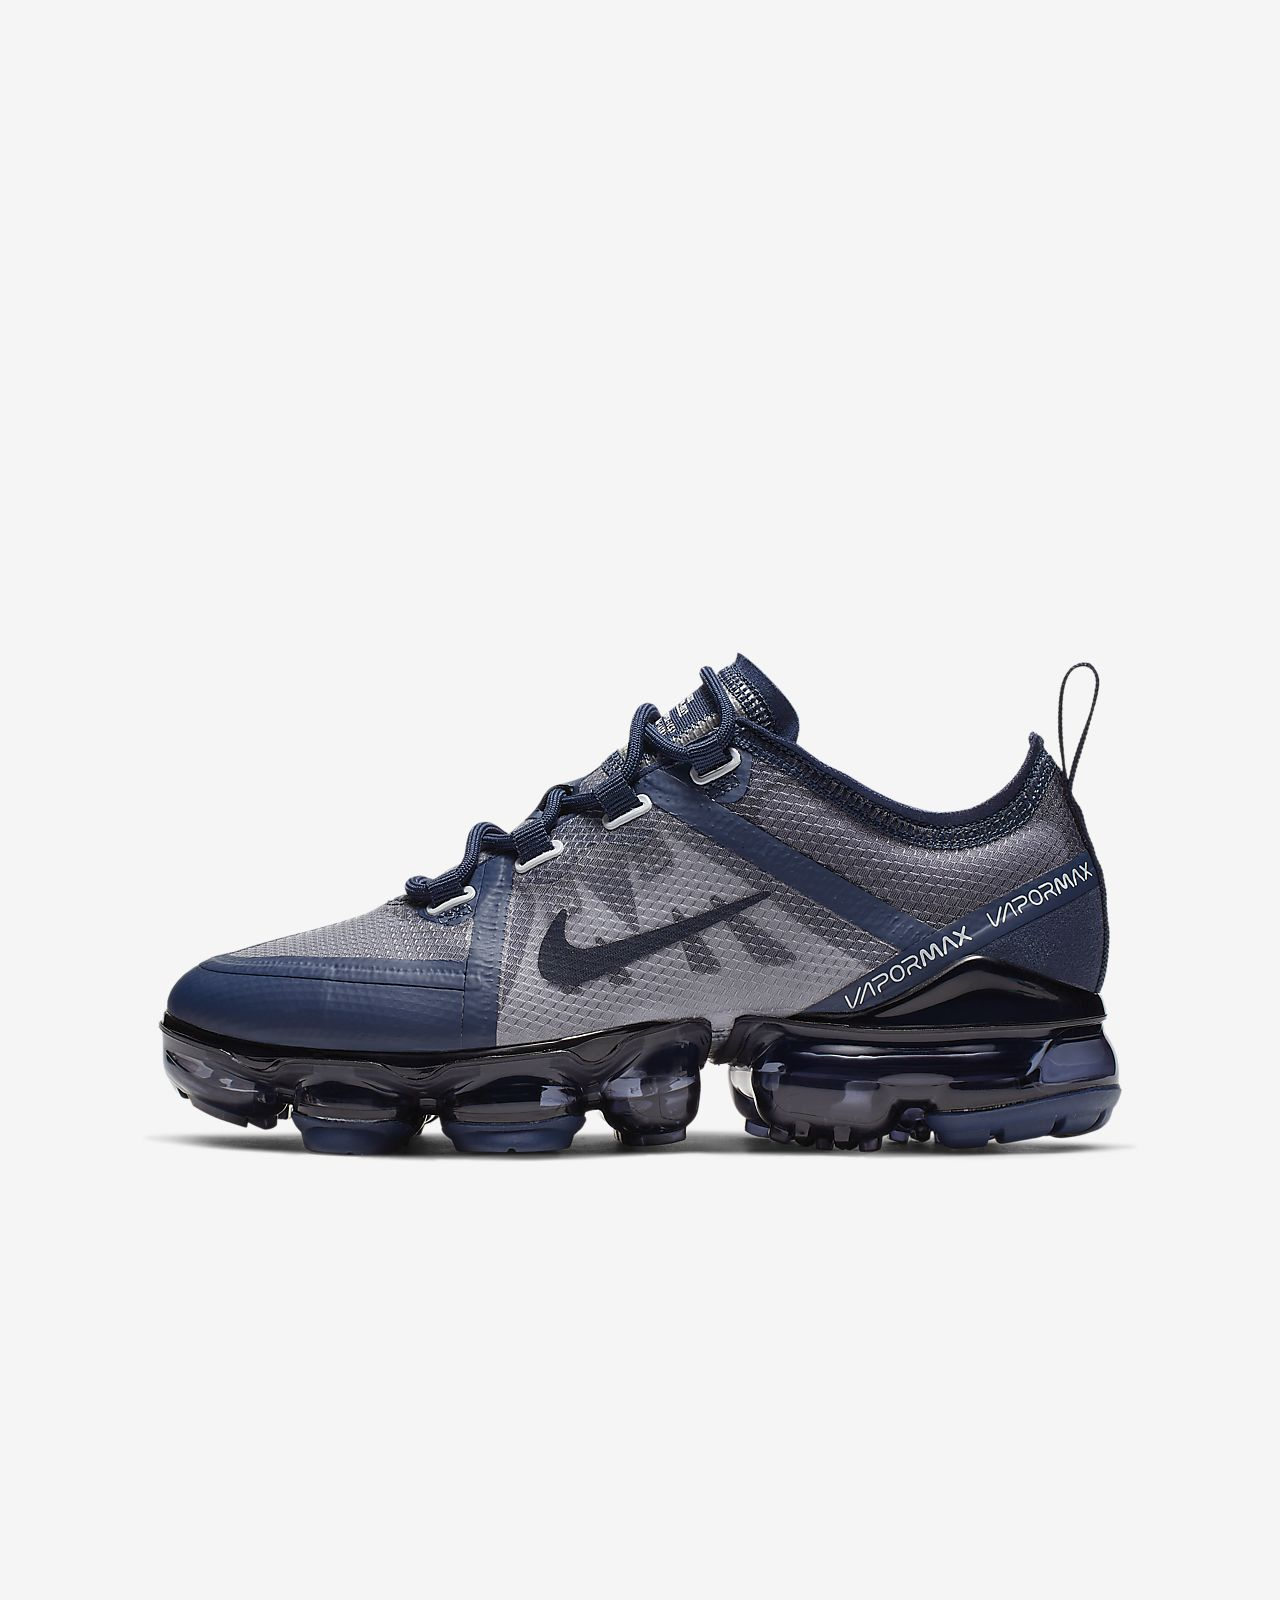 98b28ba9761 Nike Air VaporMax 2019 Older Kids  Shoe. Nike.com GB